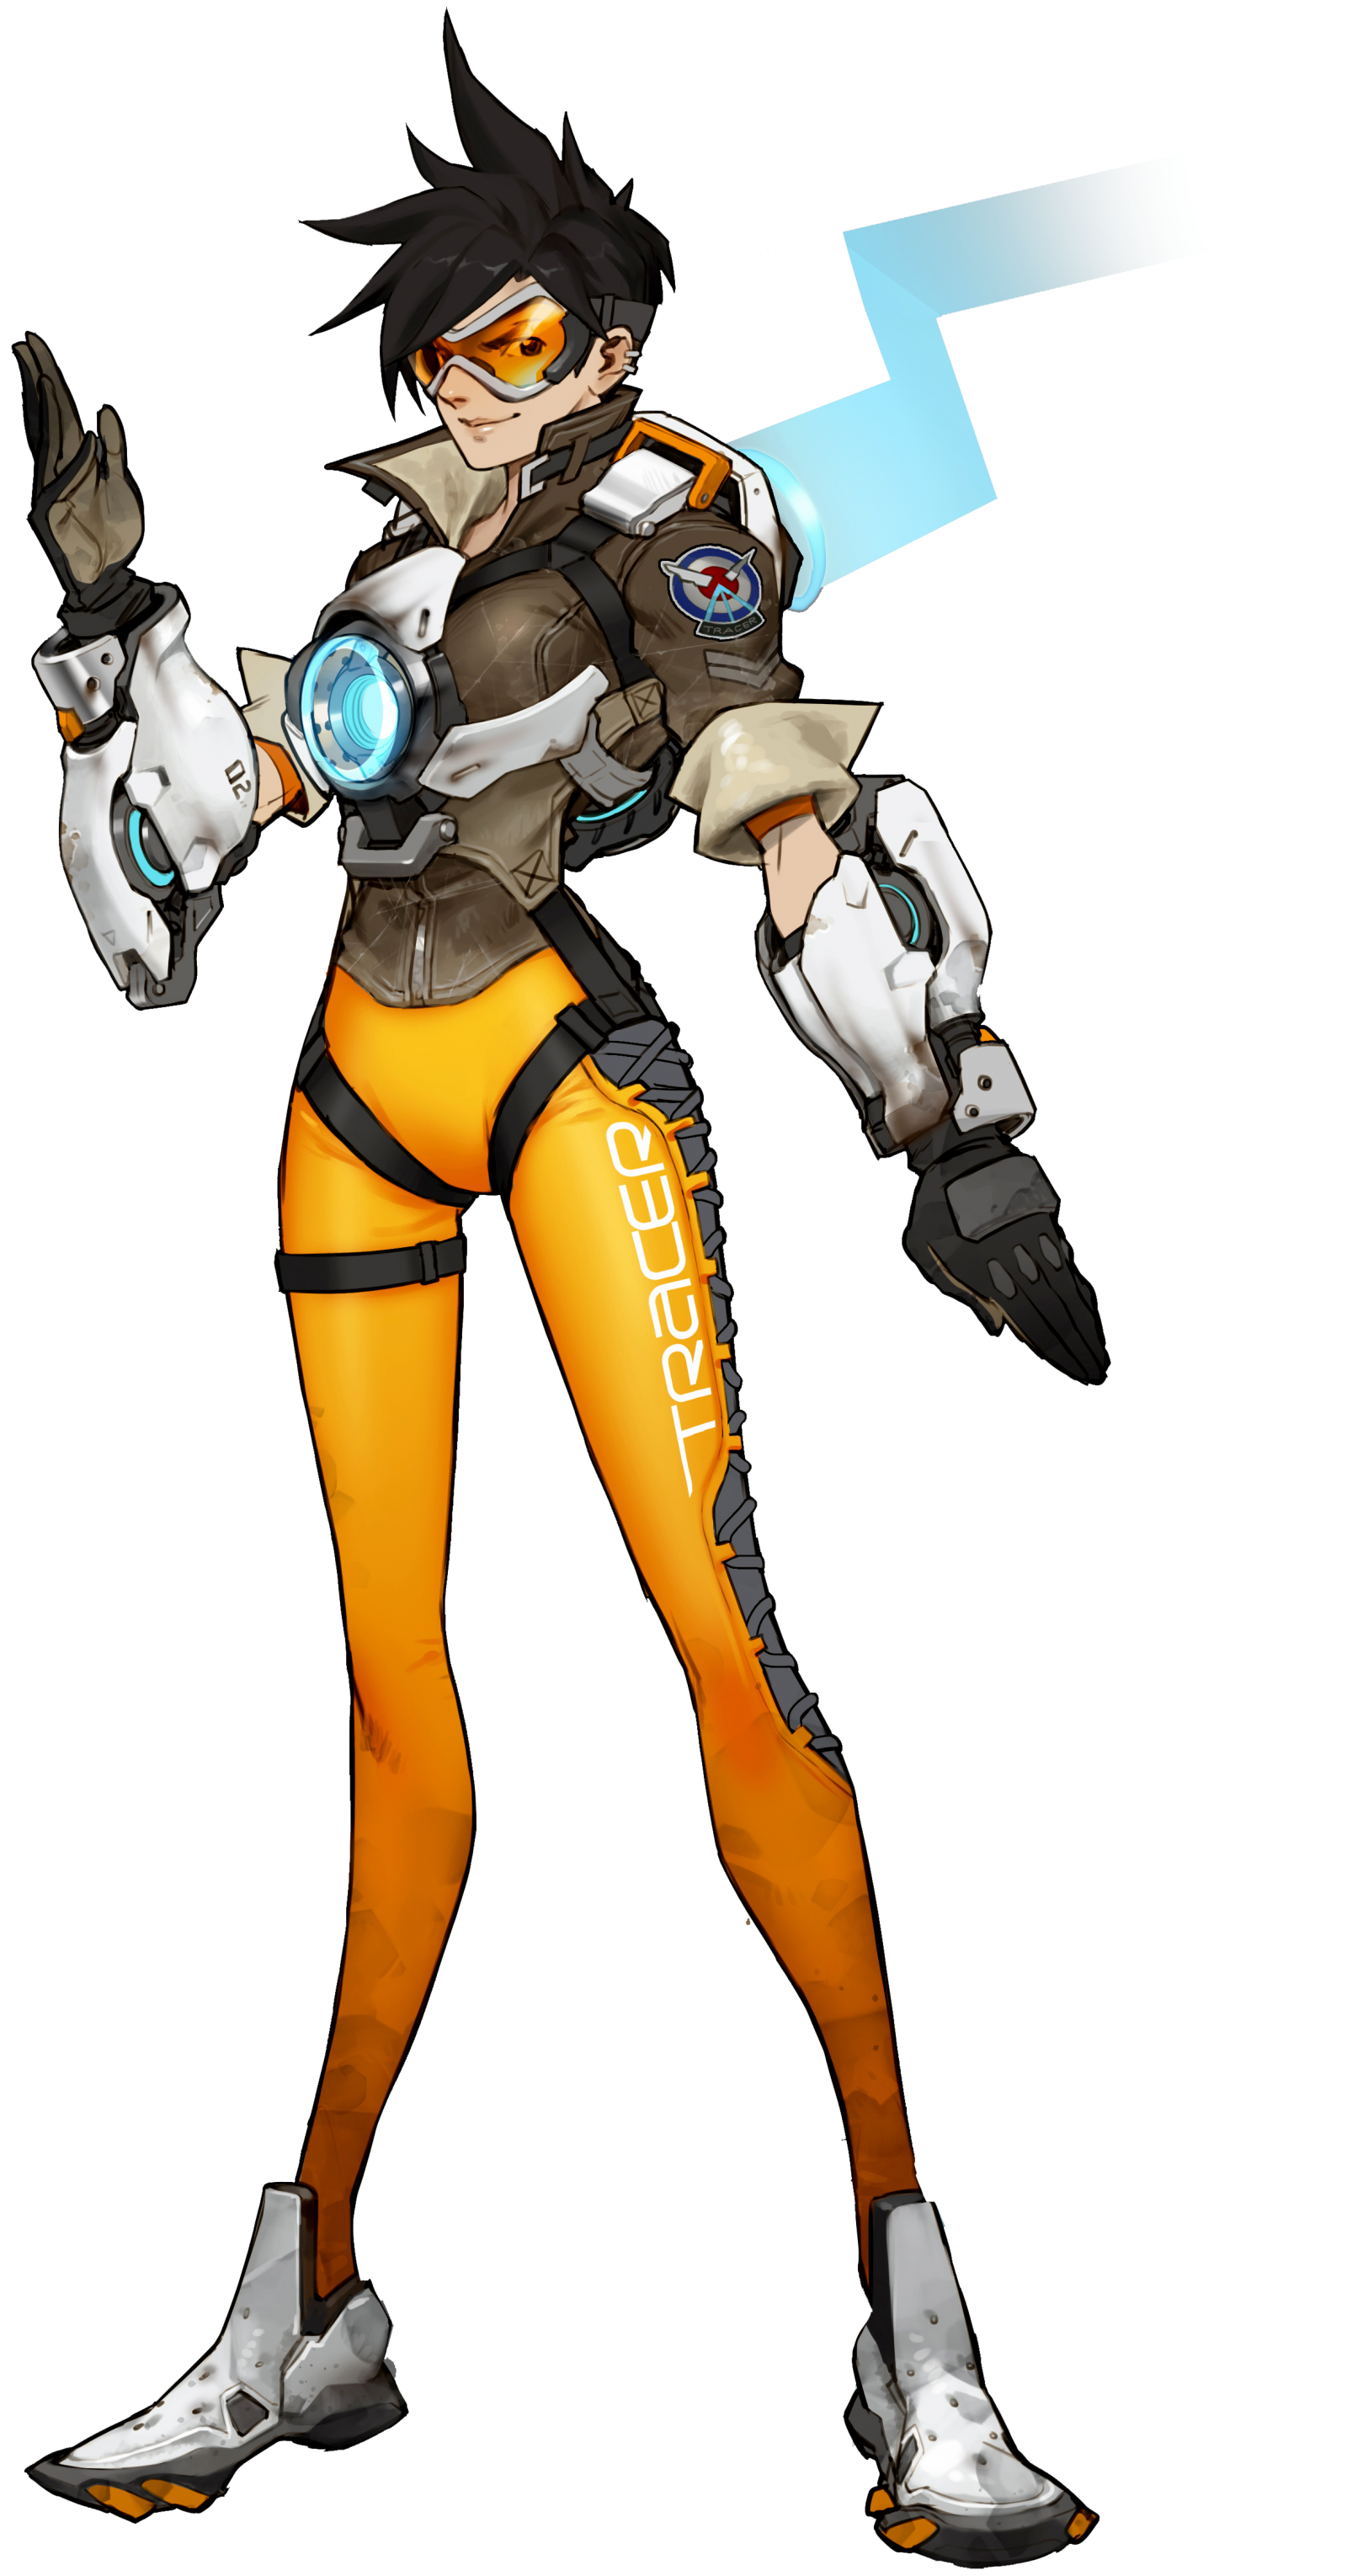 Blizzard Overwatch Characters